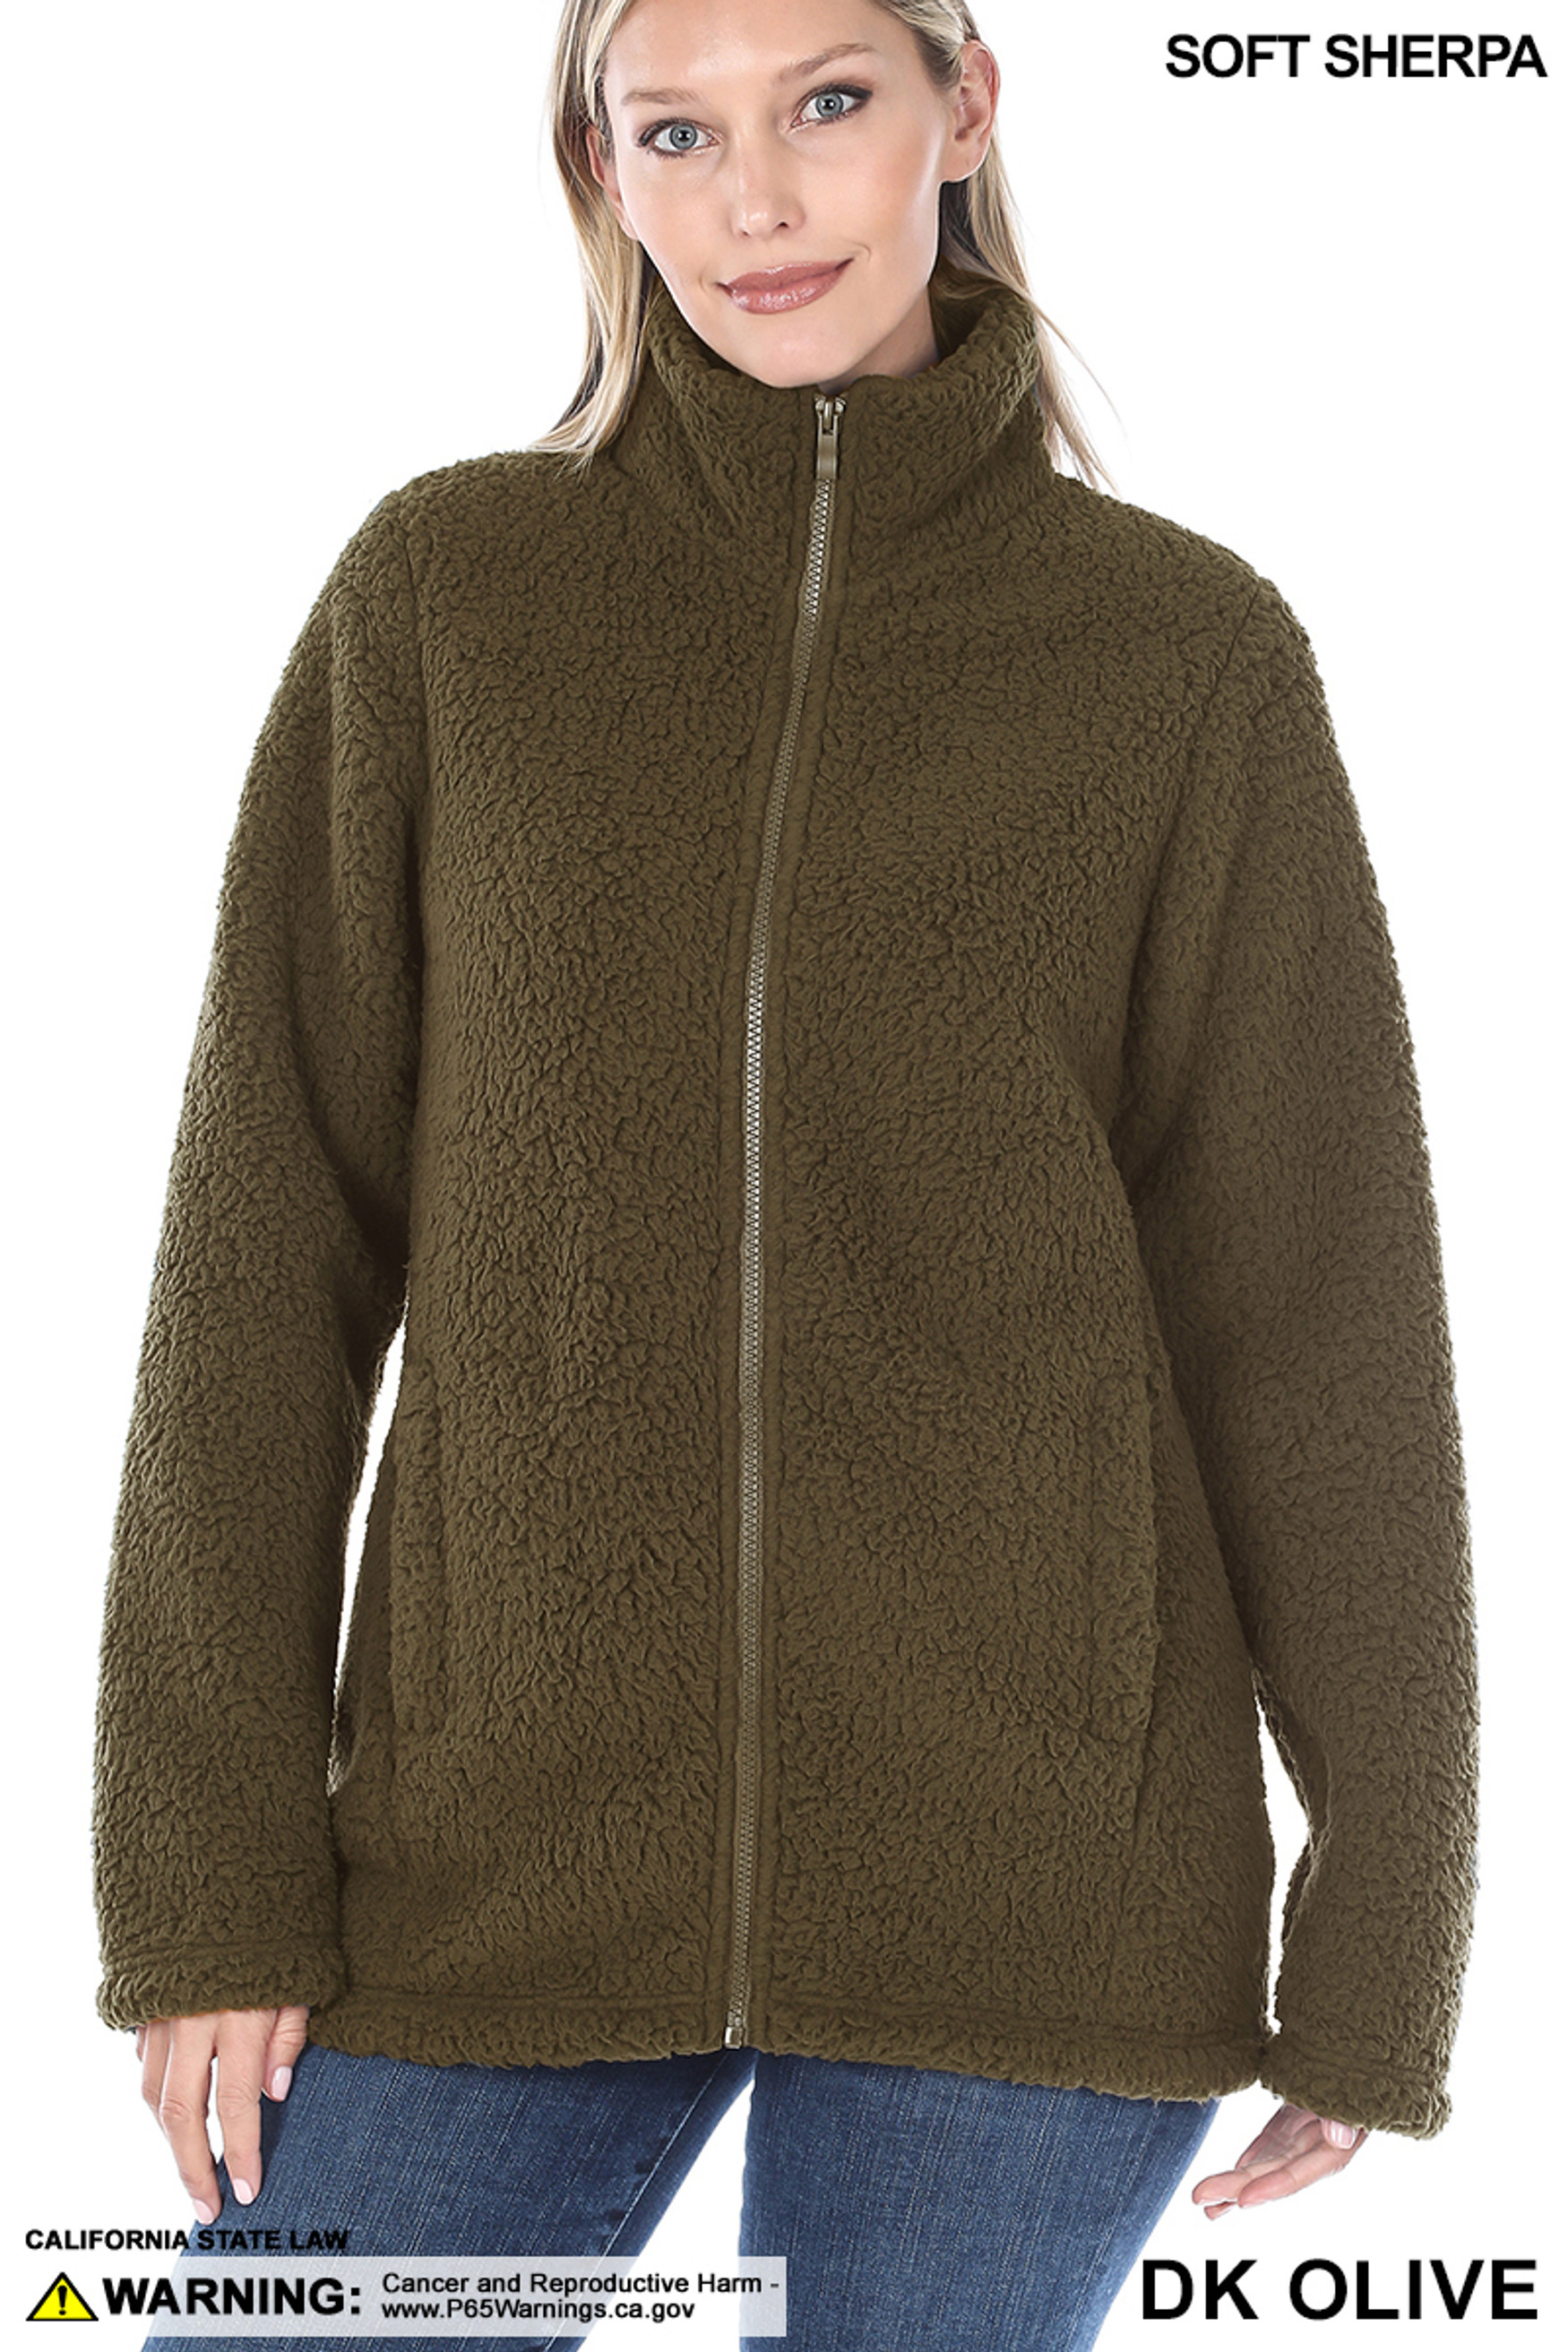 Front of Dark Olive Sherpa Zip Up Jacket with Side Pockets